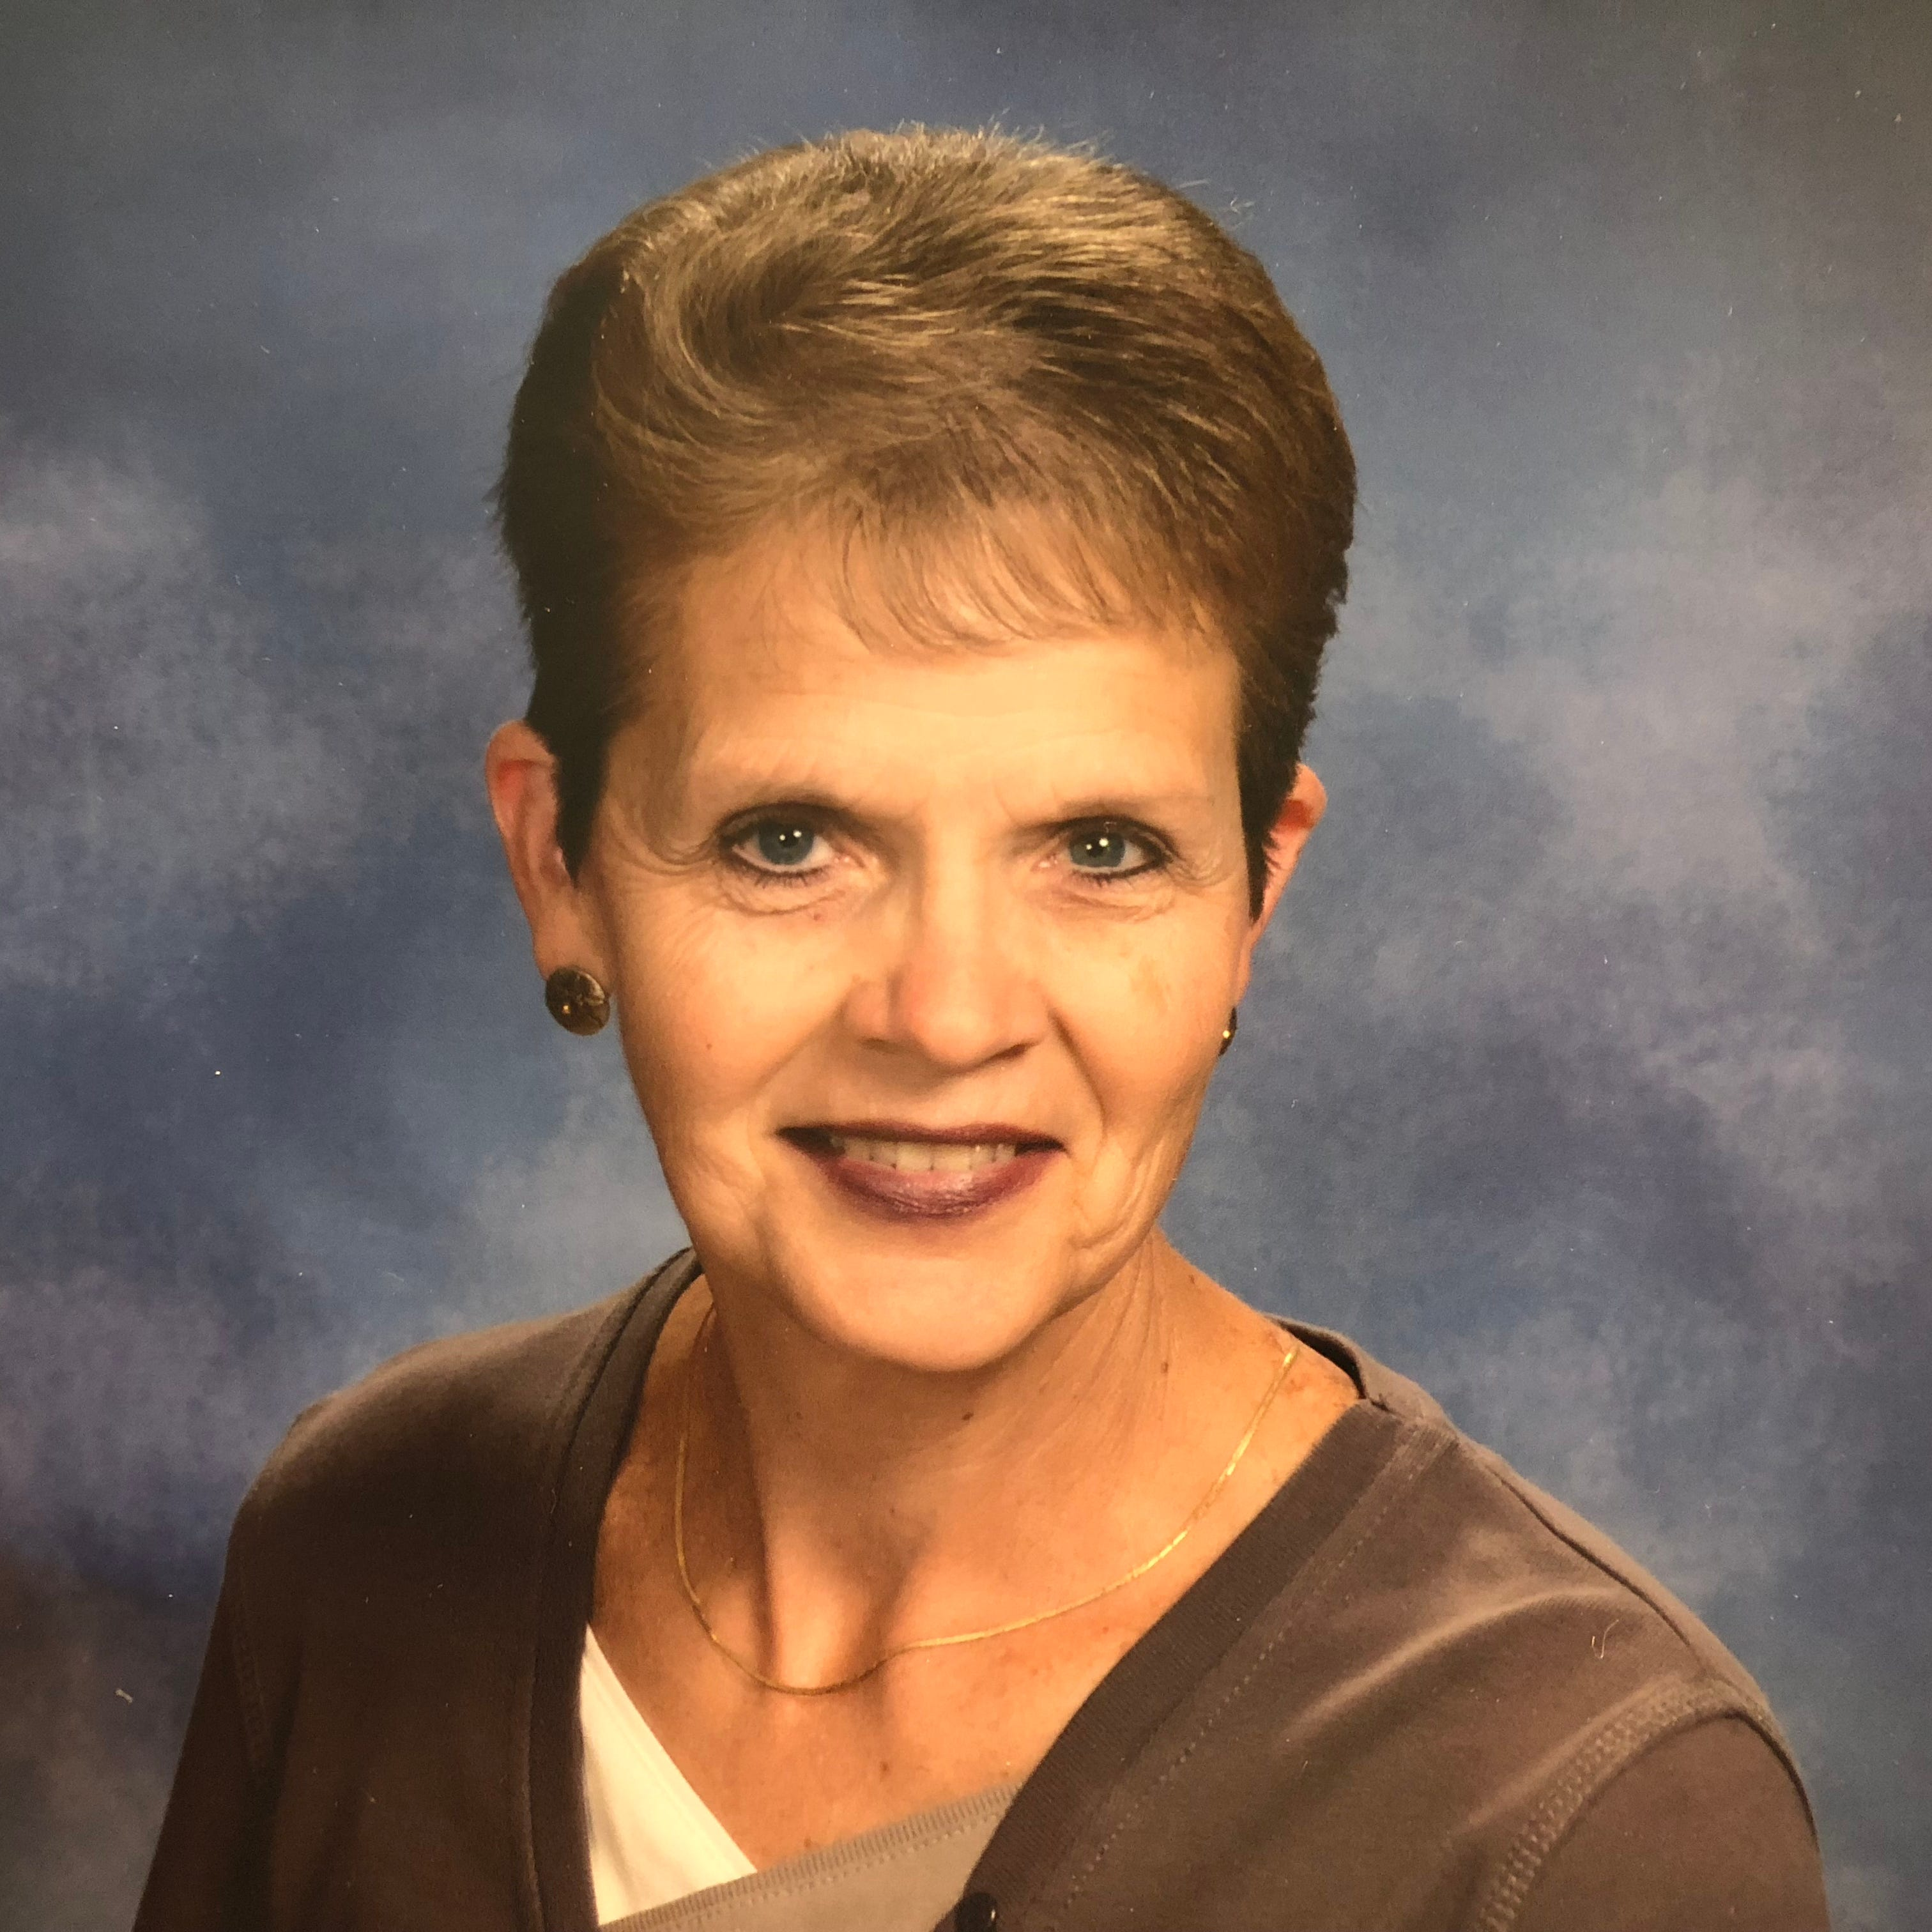 Family of Phyllis Hunhoff, 59, remember her as a quiet and humble servant of God who dedicated herself to her faith, family and the Yankton community.